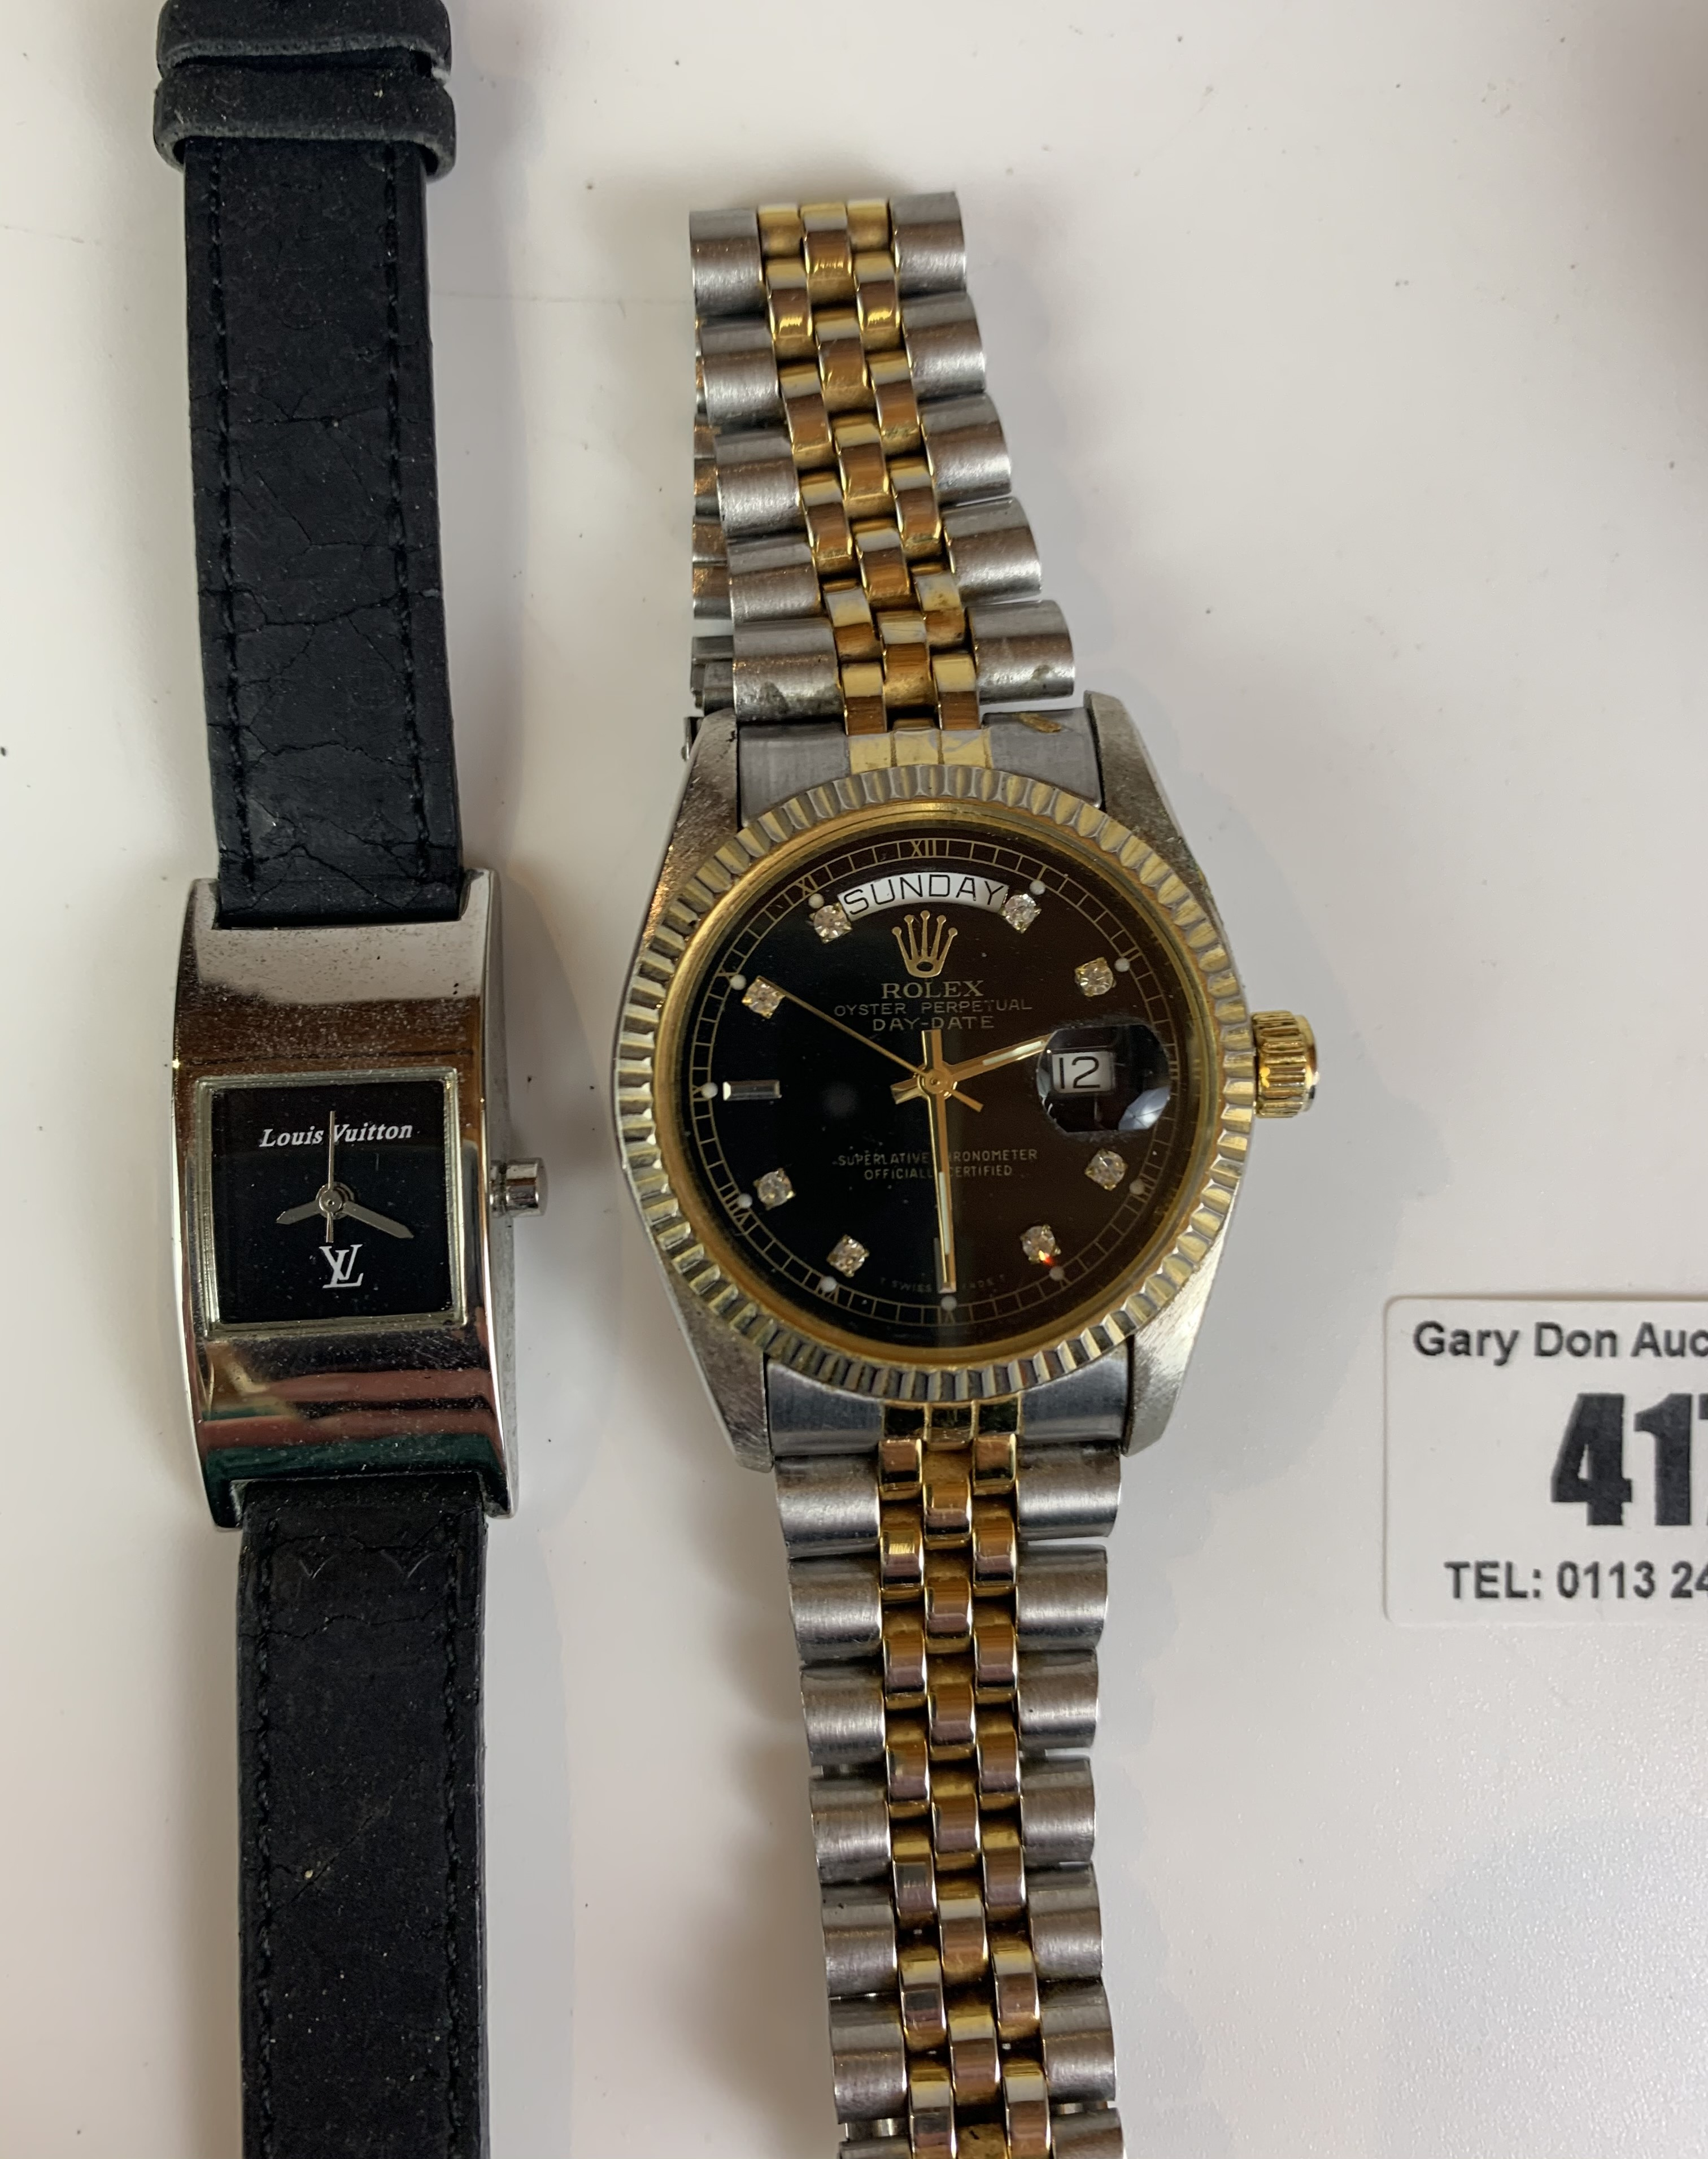 4 dress watches - Image 2 of 8